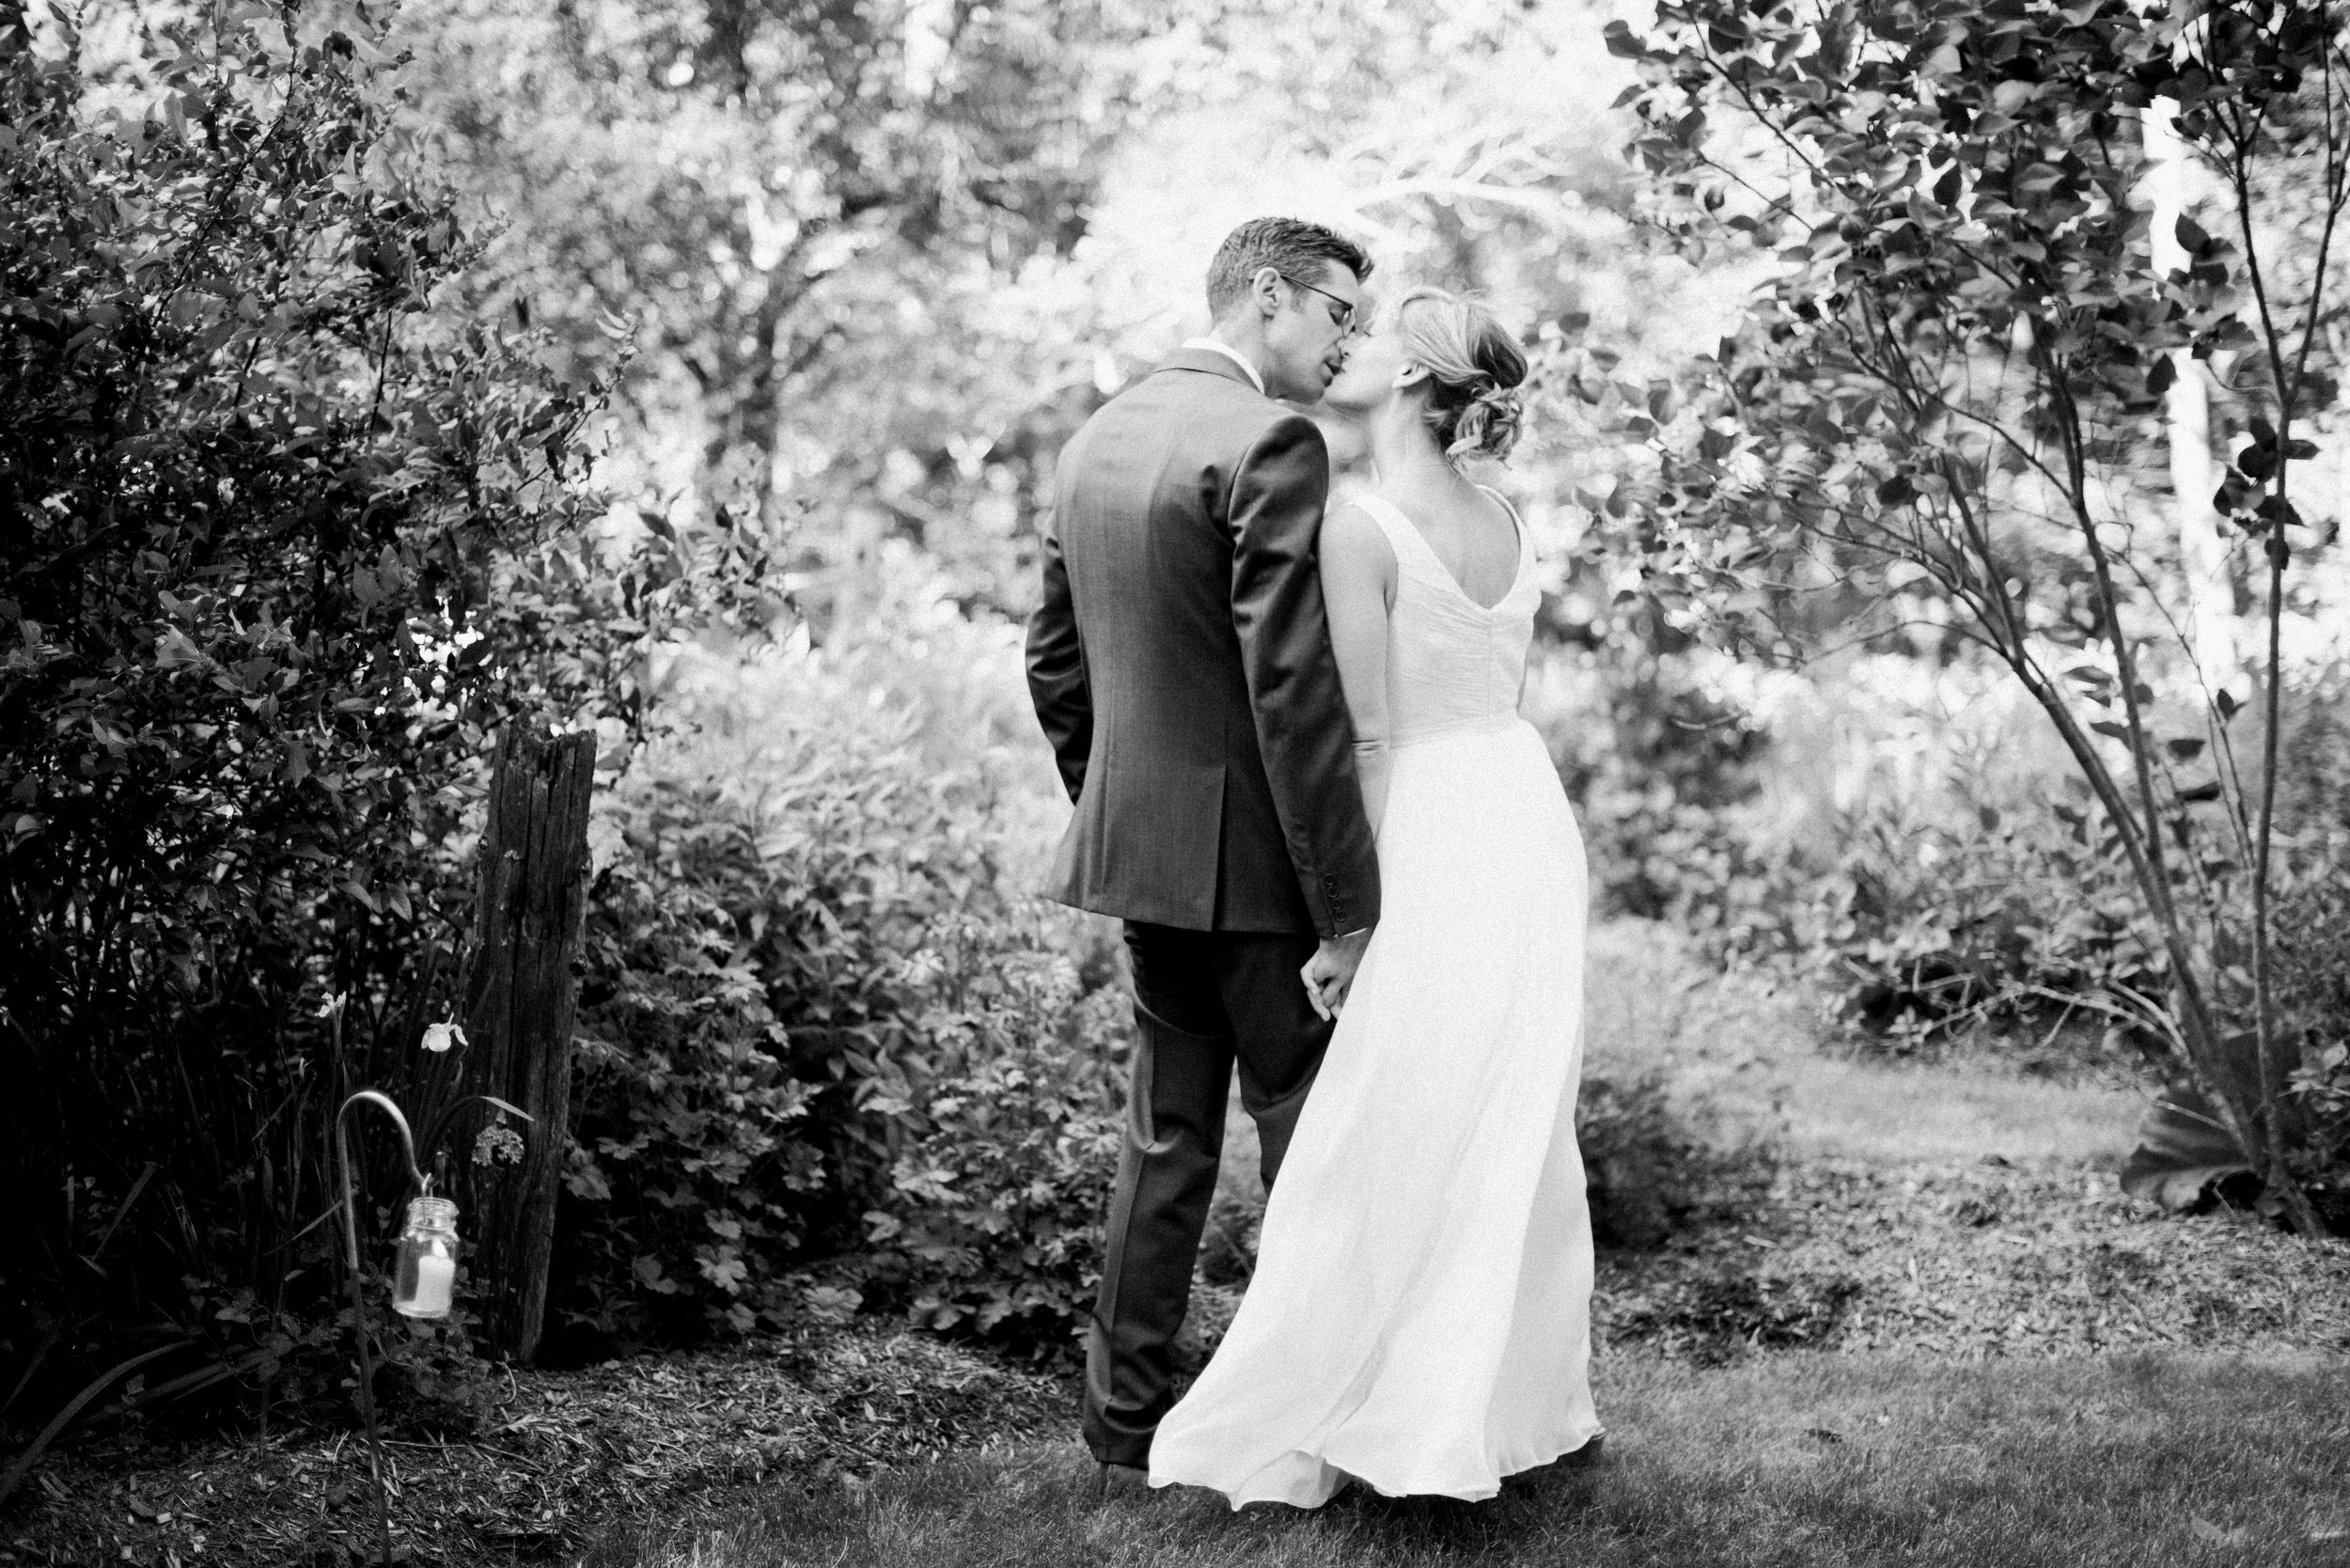 Backyard Weddings in Amherst MA